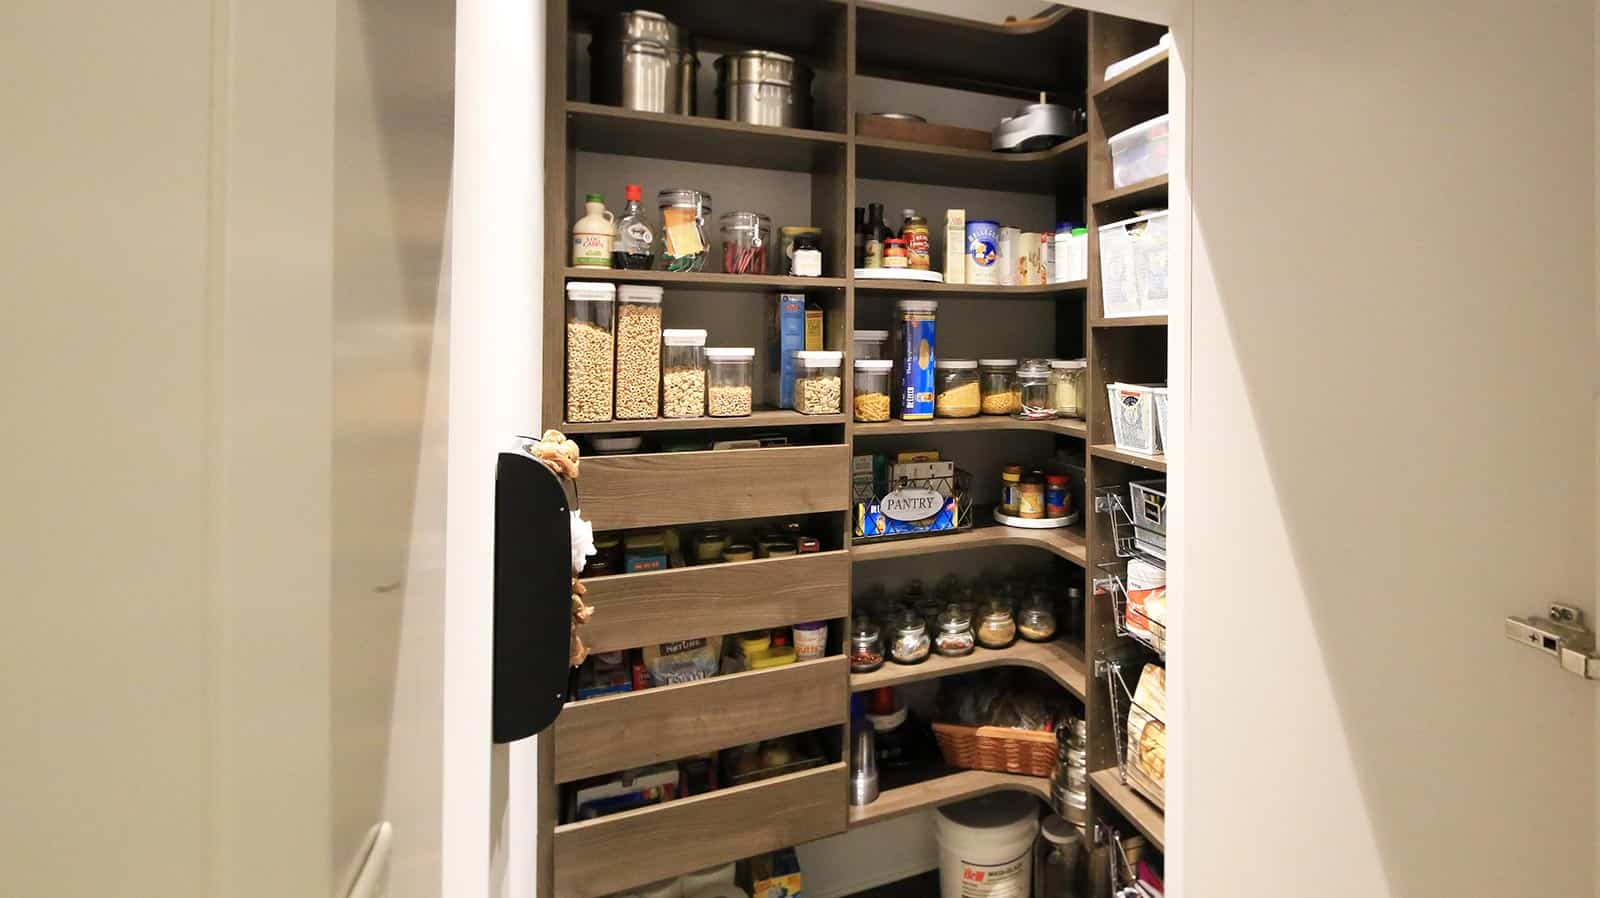 Pantry - Habersham Elm